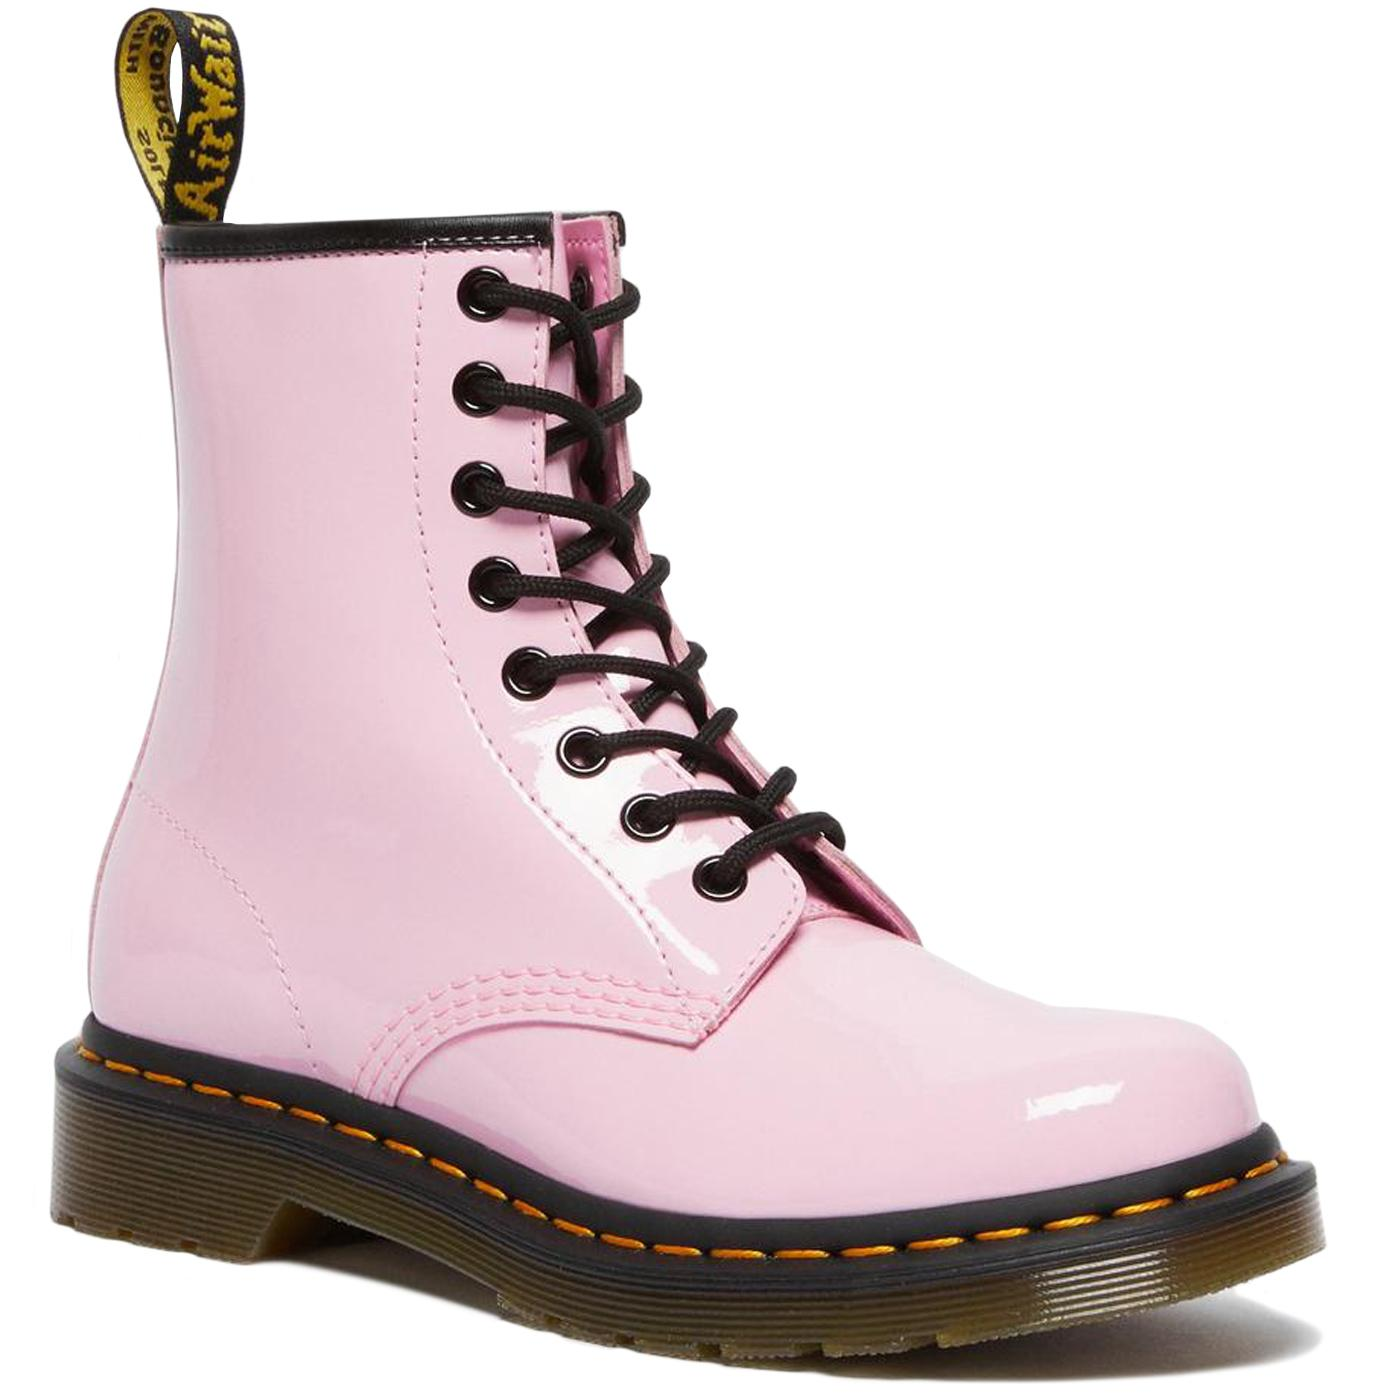 DR MARTENS 1460 Womens Patent Lamper Boots (Pink)